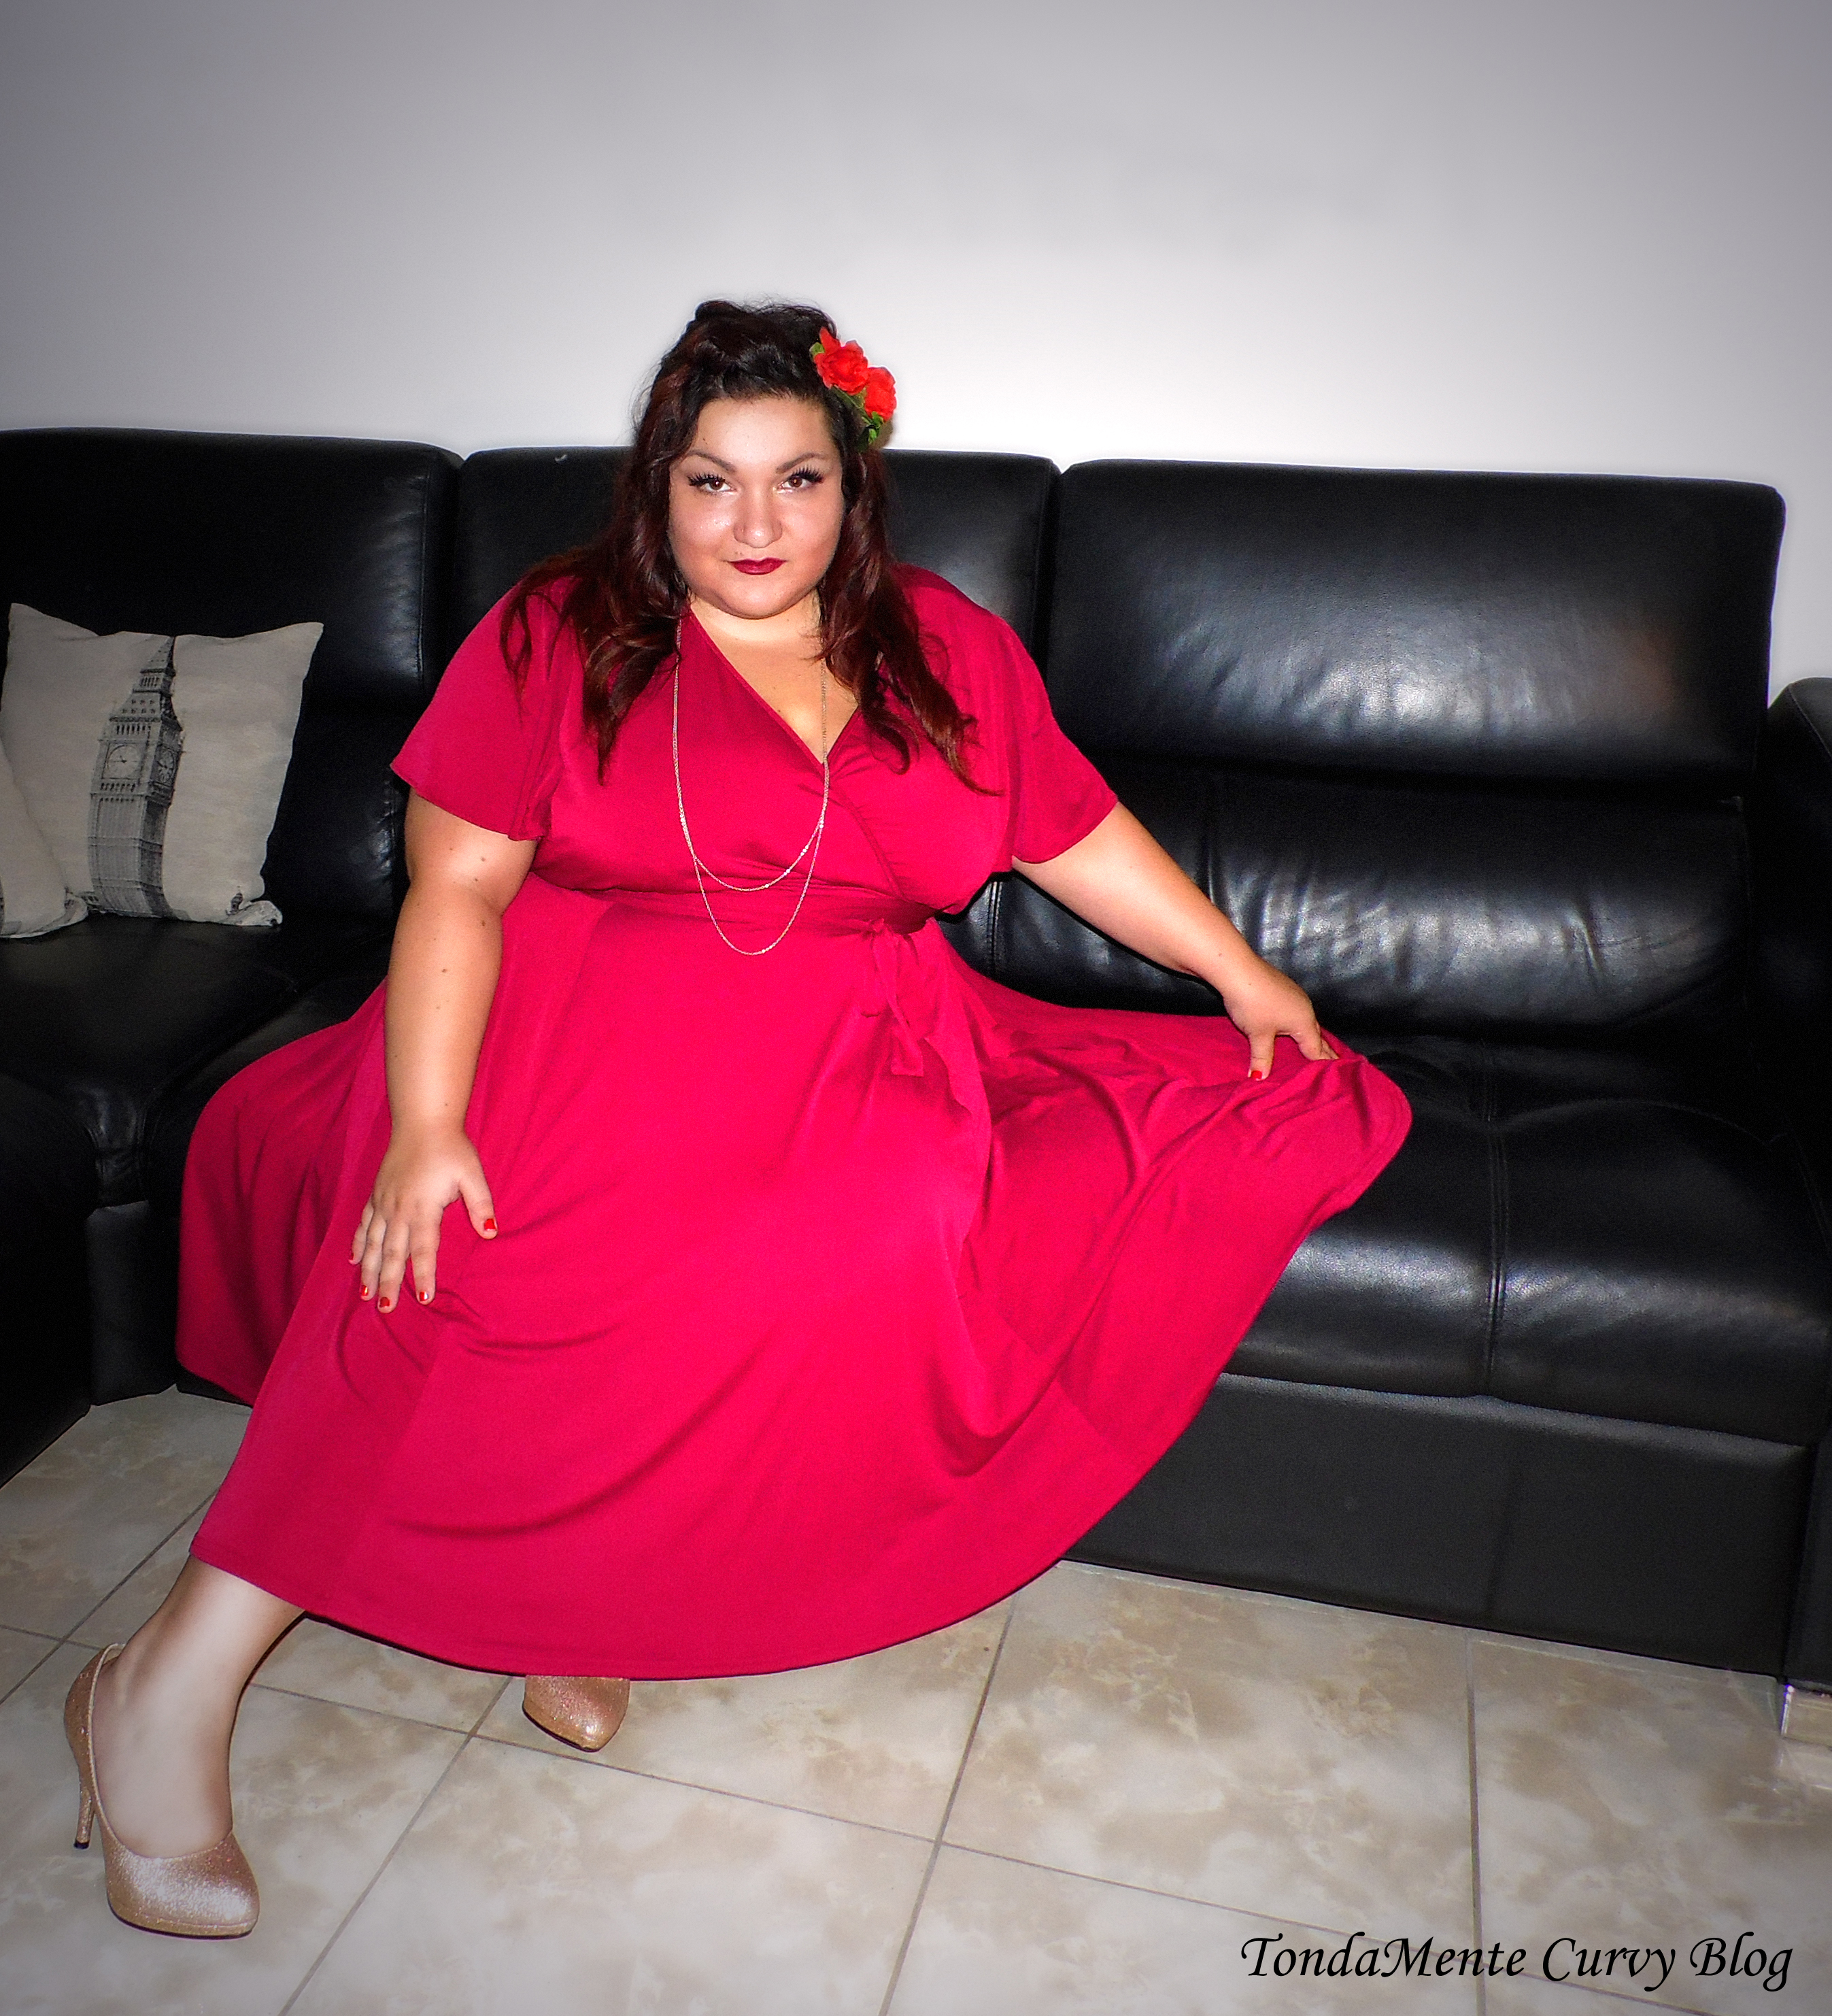 curvy plus size fashion blogger - curvy blog italia